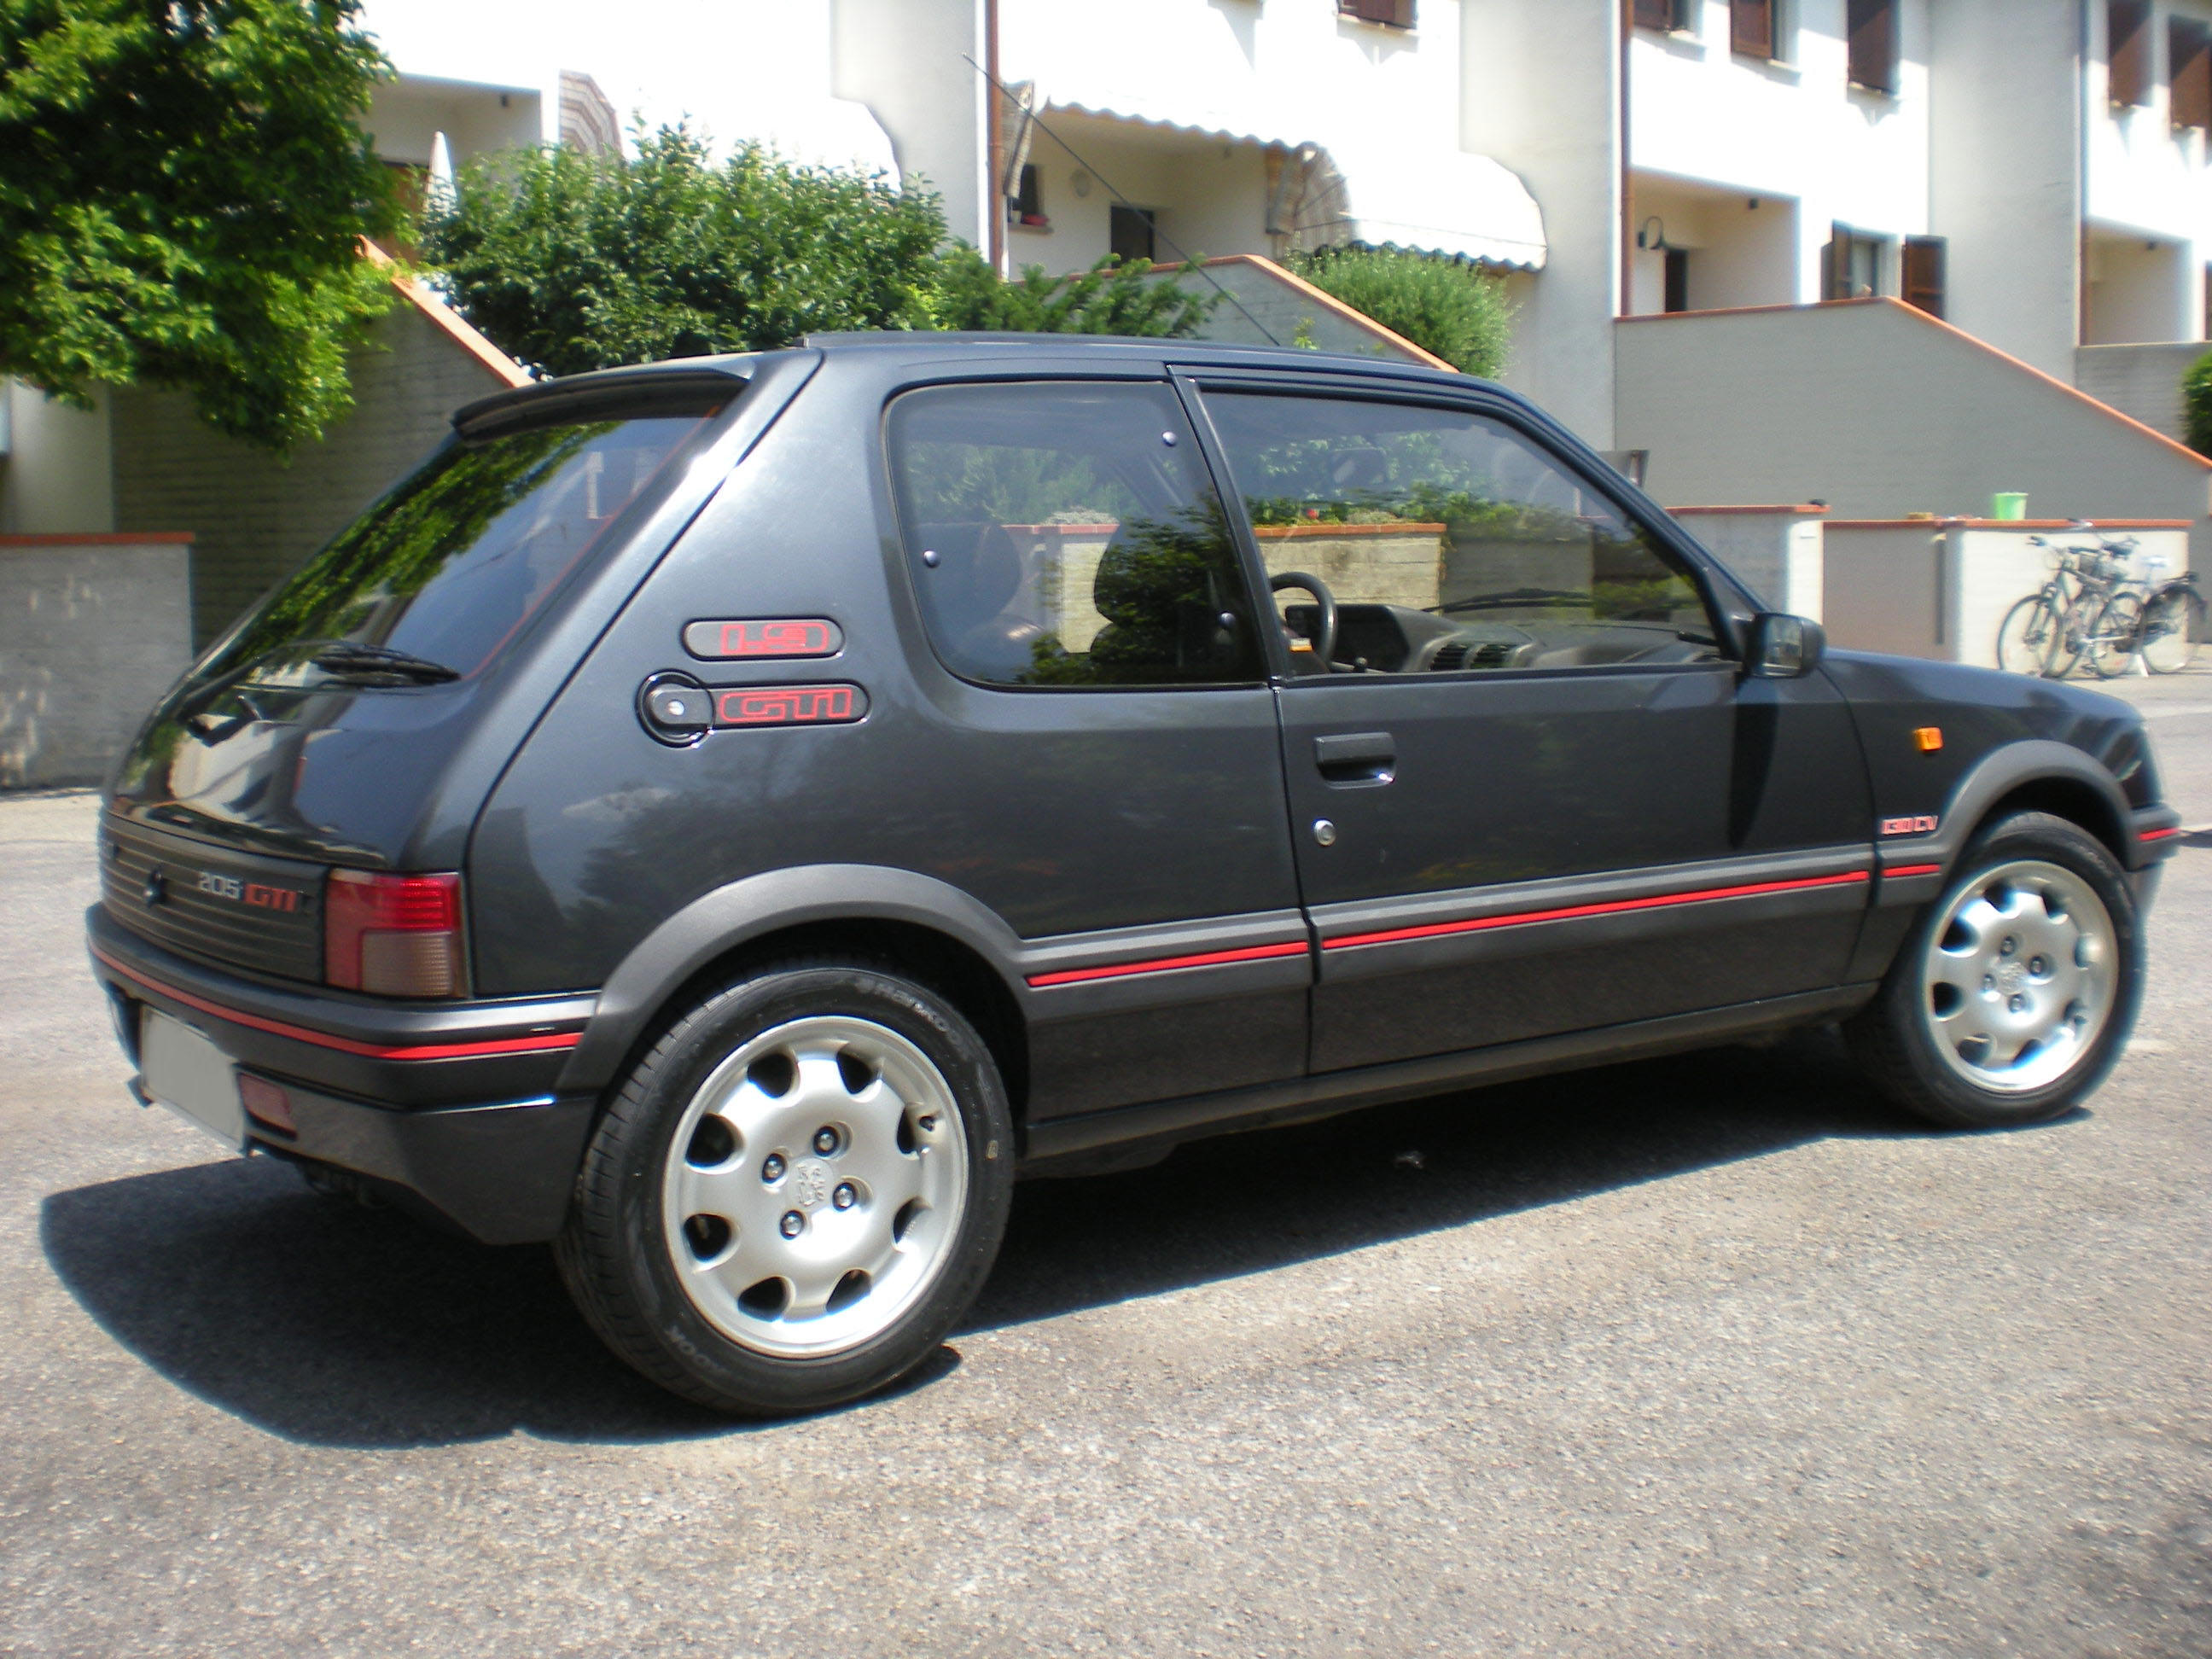 peugeot 205 gti di gaga. Black Bedroom Furniture Sets. Home Design Ideas